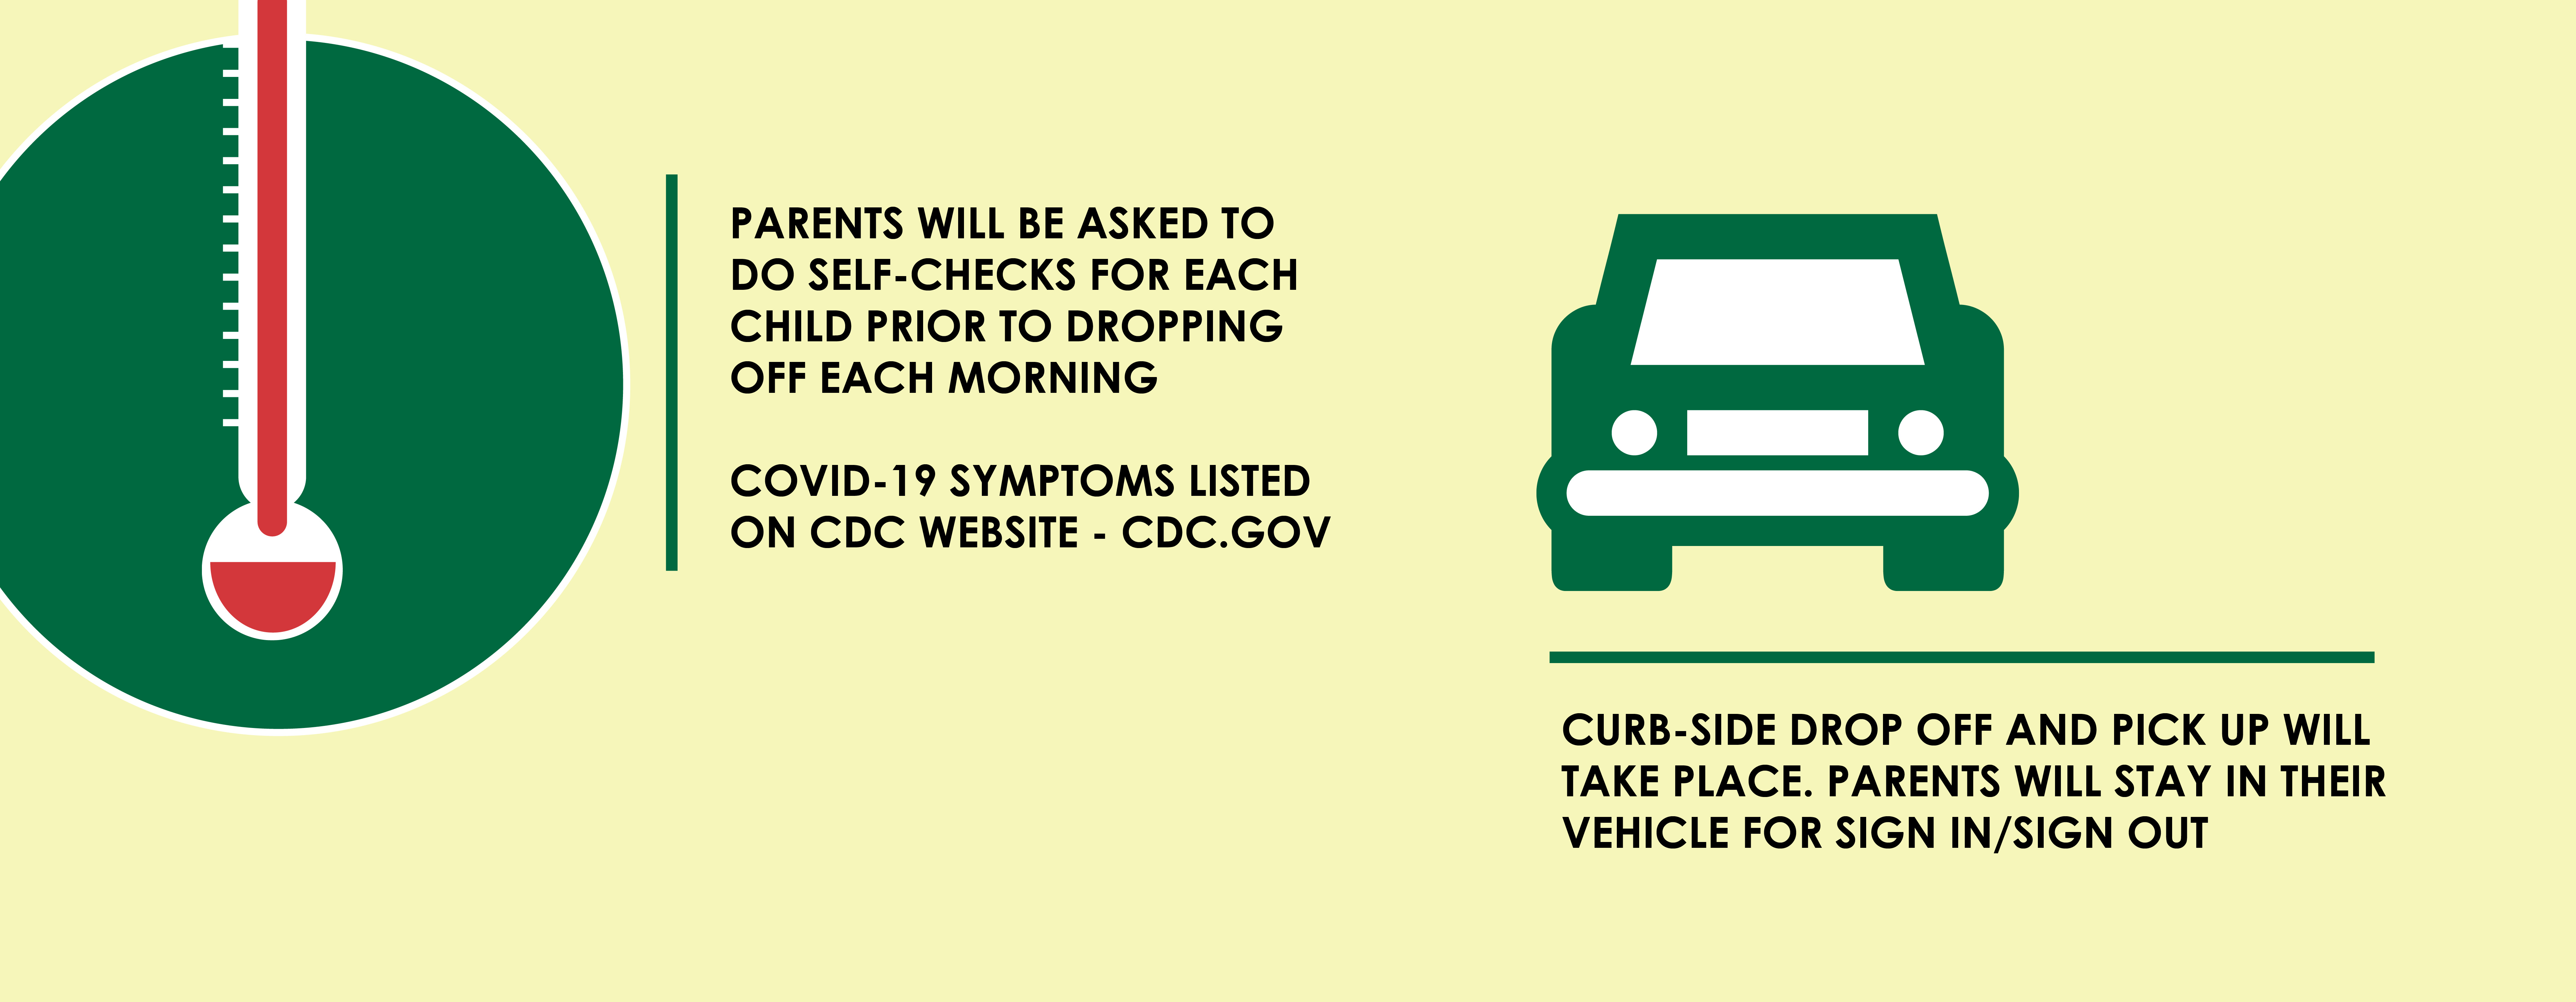 Parents will be asked to do self-checks prior to drop off each morning. Curb side drop off and pick up will take place. Parents will stay in their vehicle for sign in/sign out.